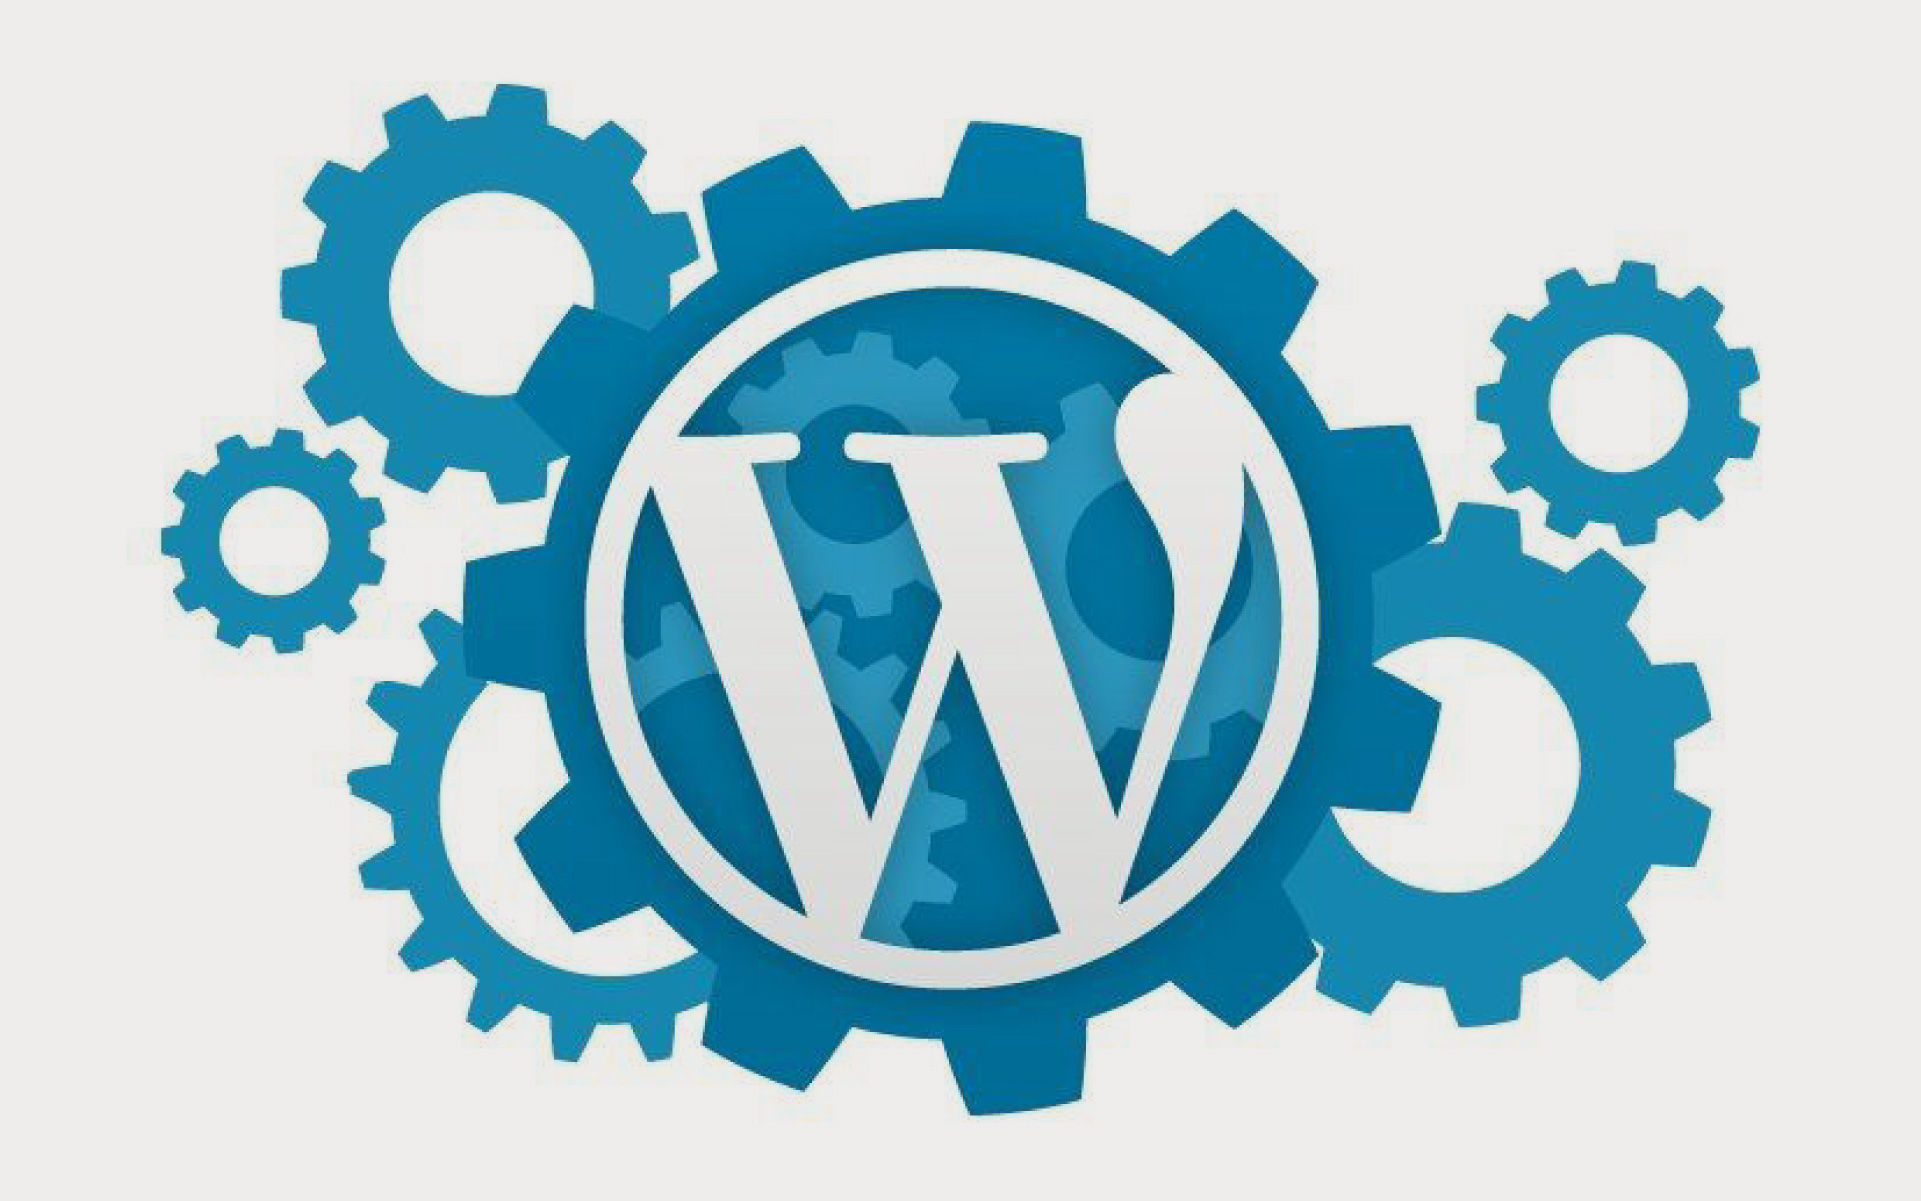 crear una página web con WordPress